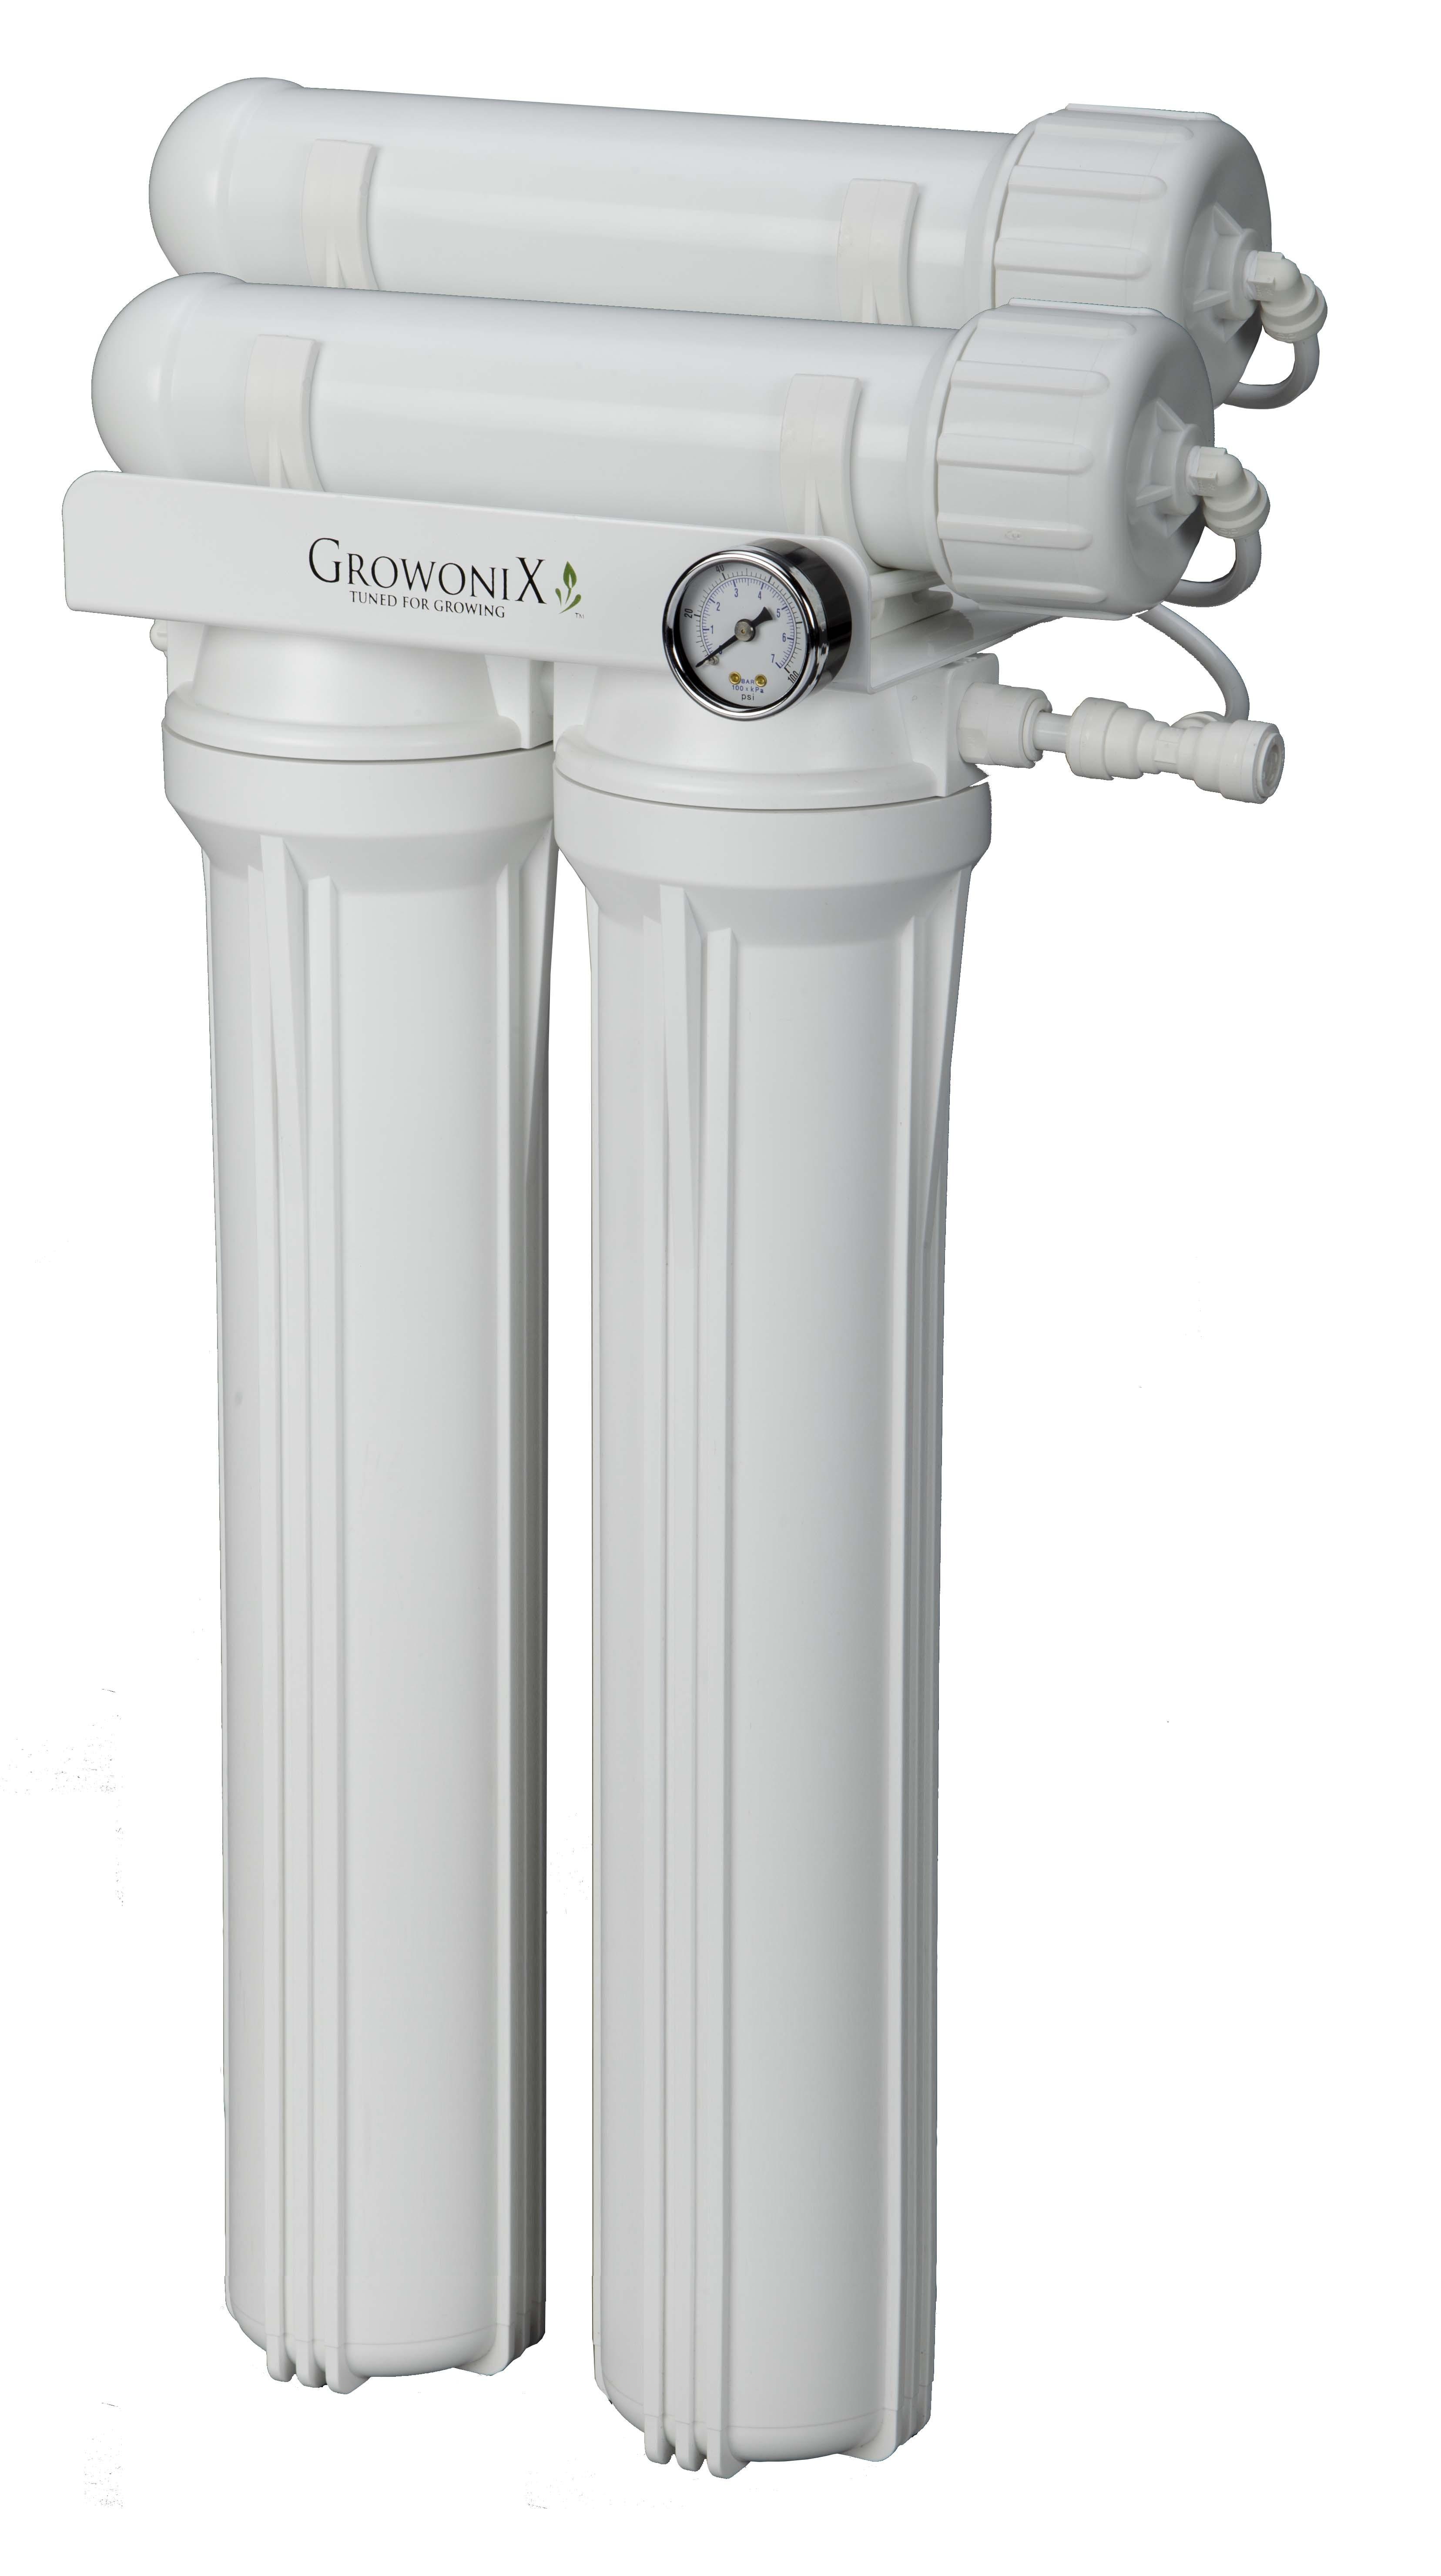 Growonix EX400HF-T R.O. Filter System